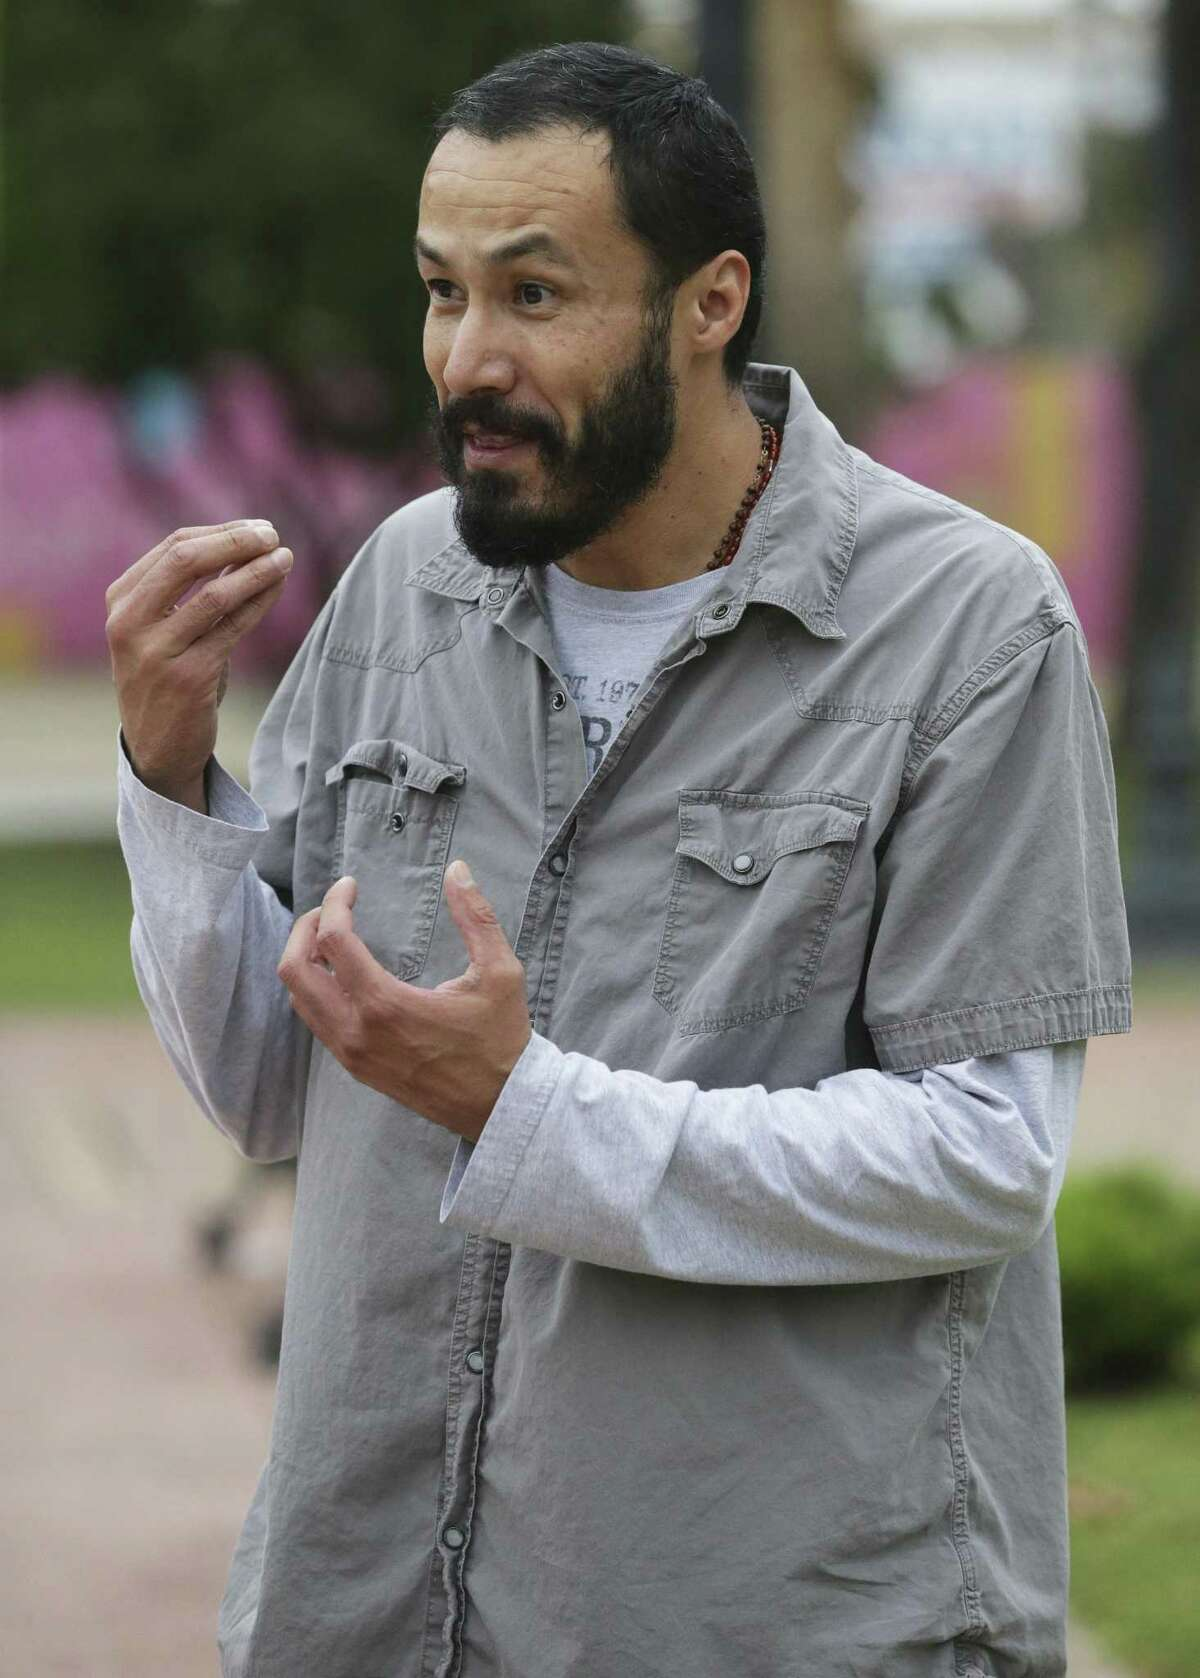 Luis Amaro plays Jesus as actors in the re-enactment of the Passion of Christ on Good Friday rehearse on April 11, 2017 in Milam Park.